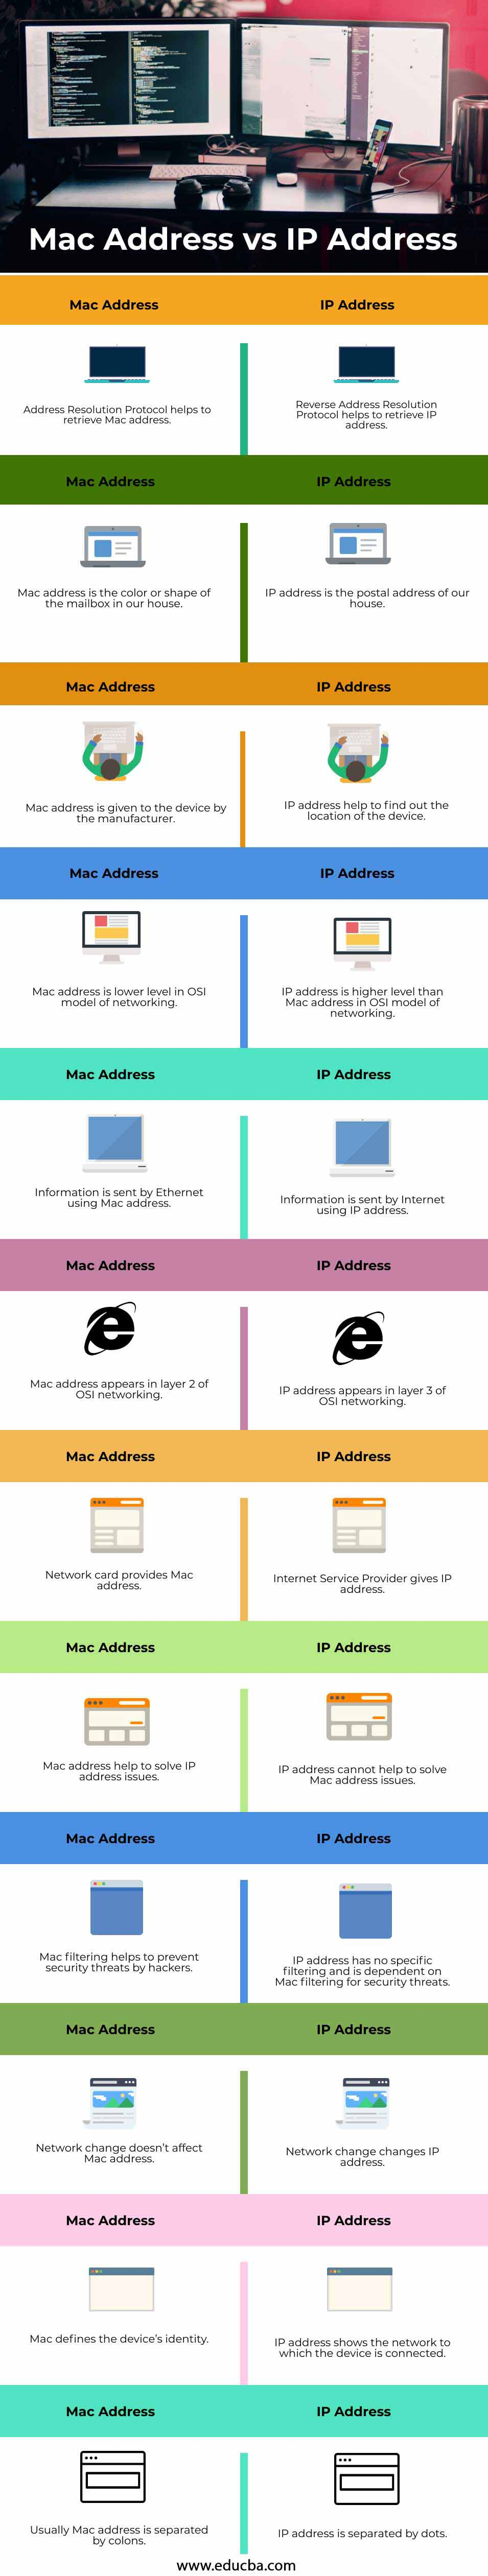 Mac-Address-vs-IP-Address-info